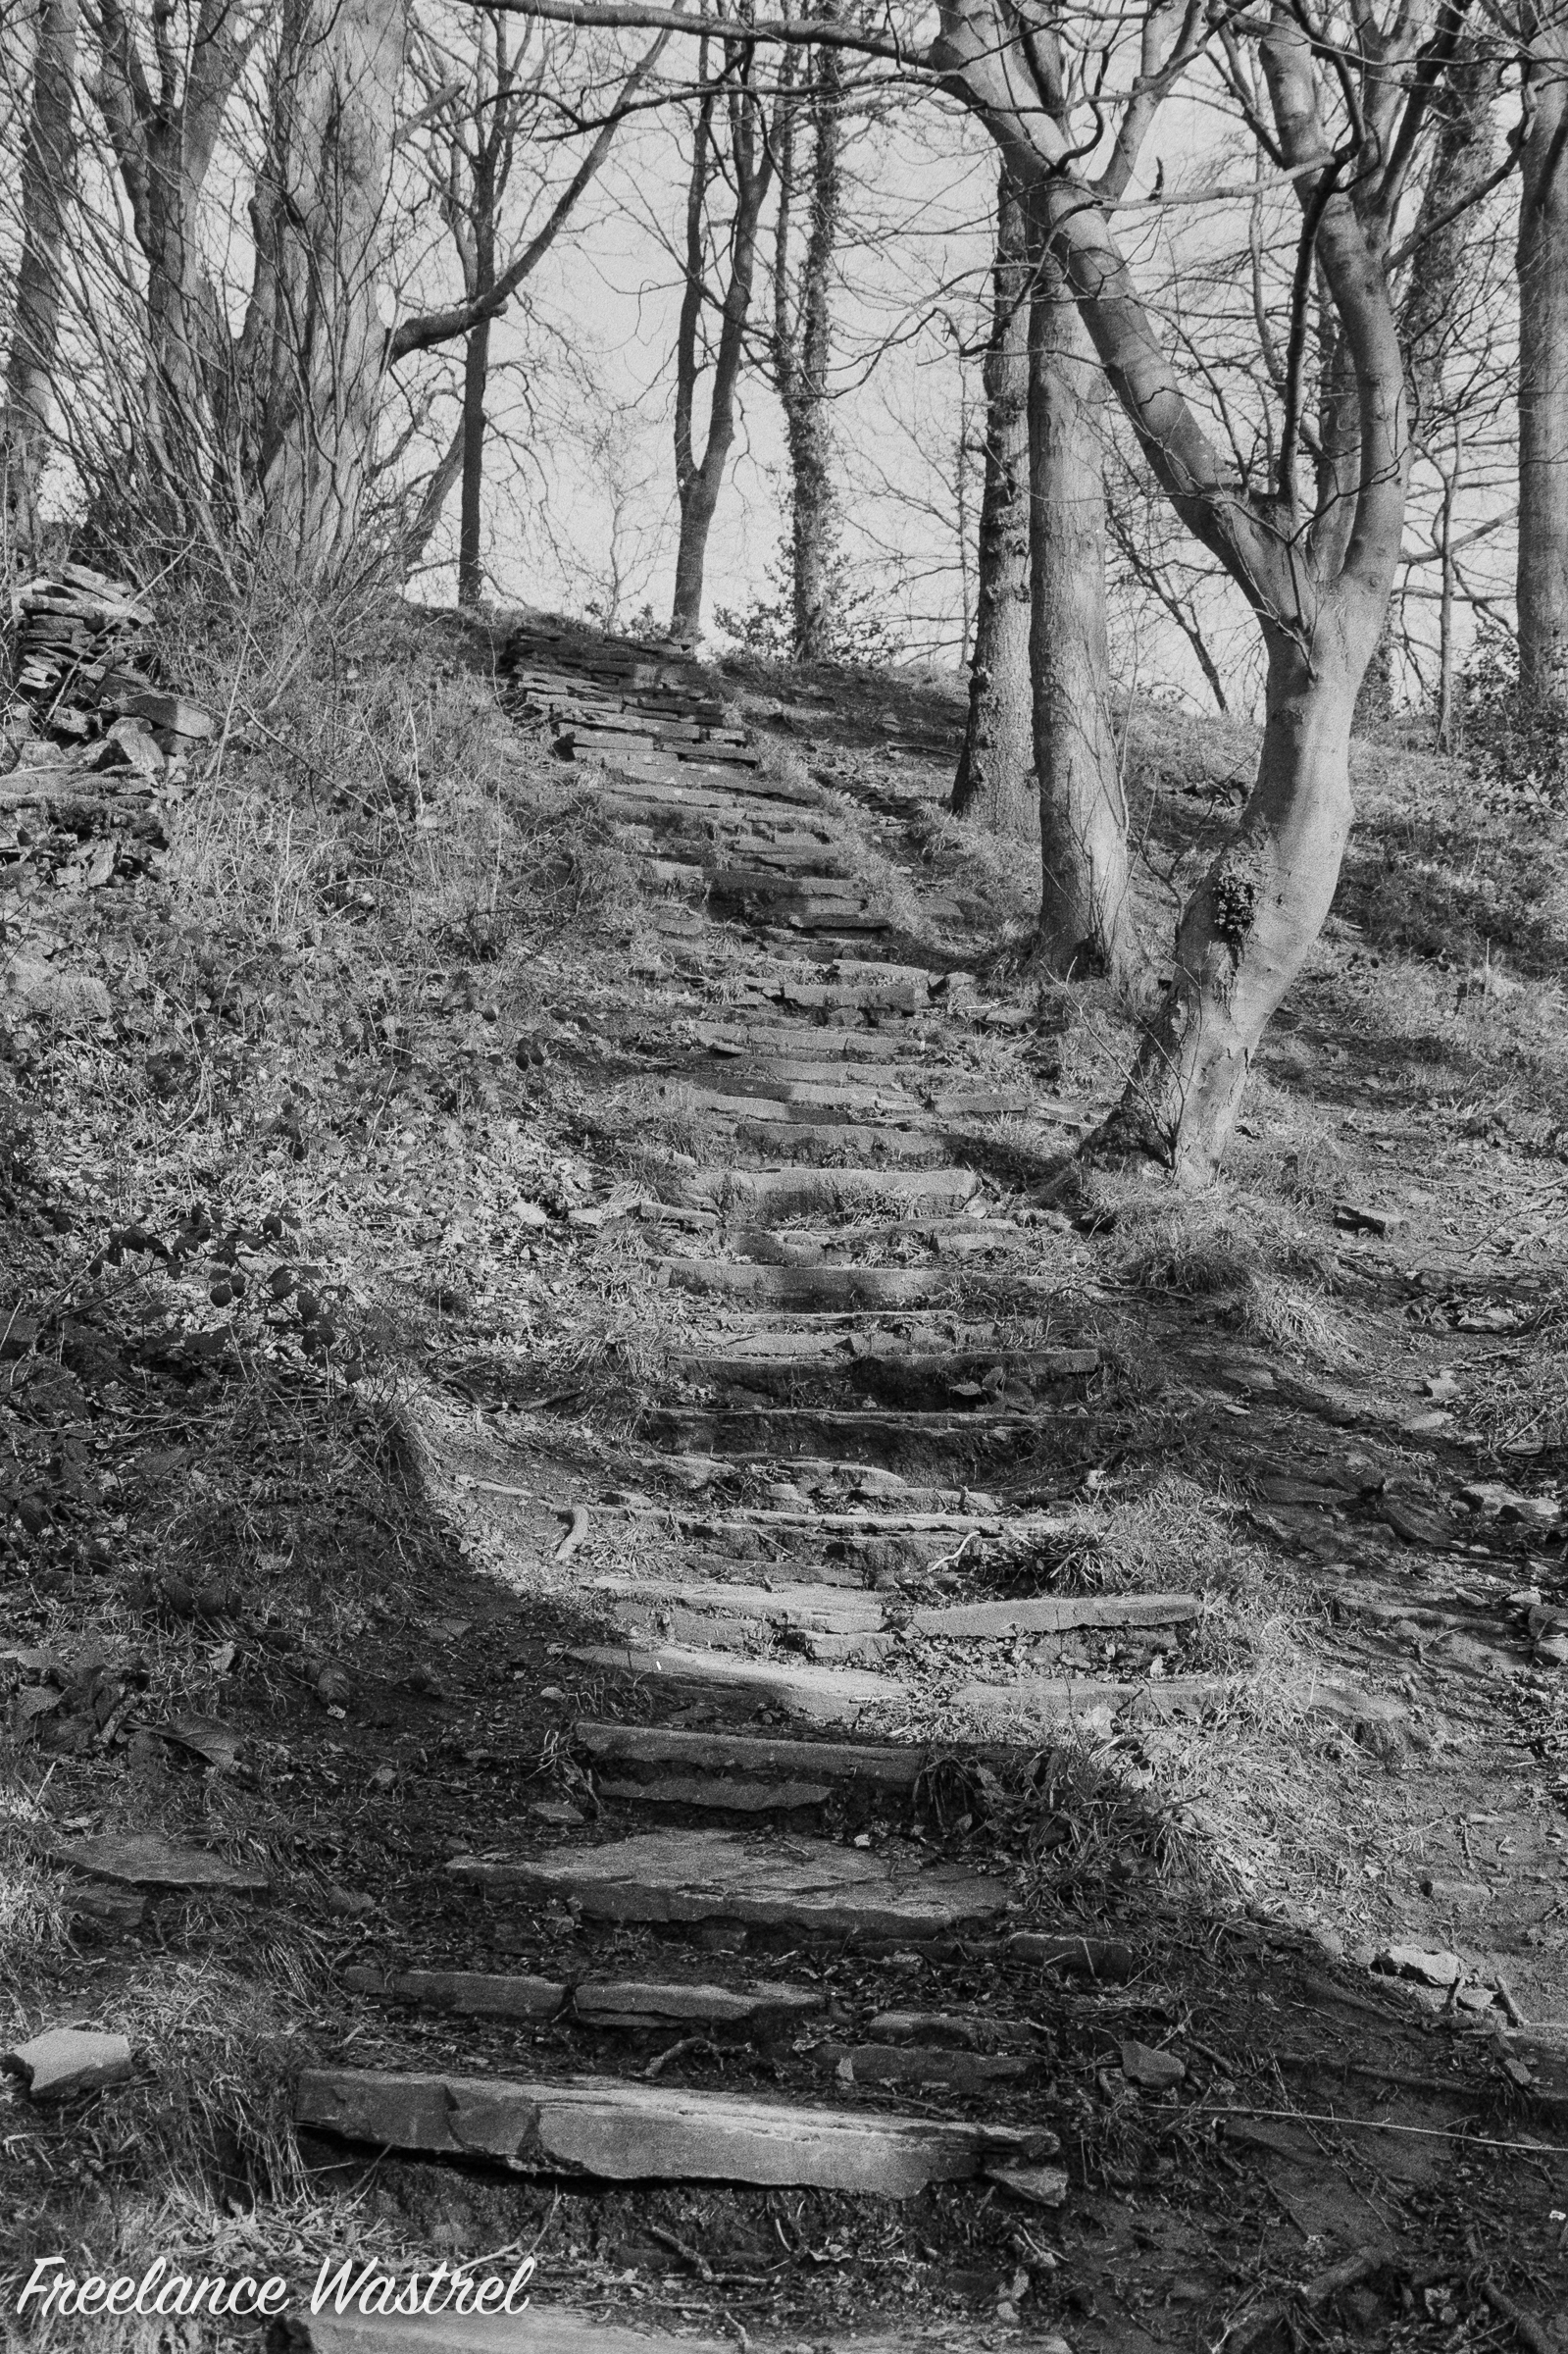 Woodland Staircase, February 2020